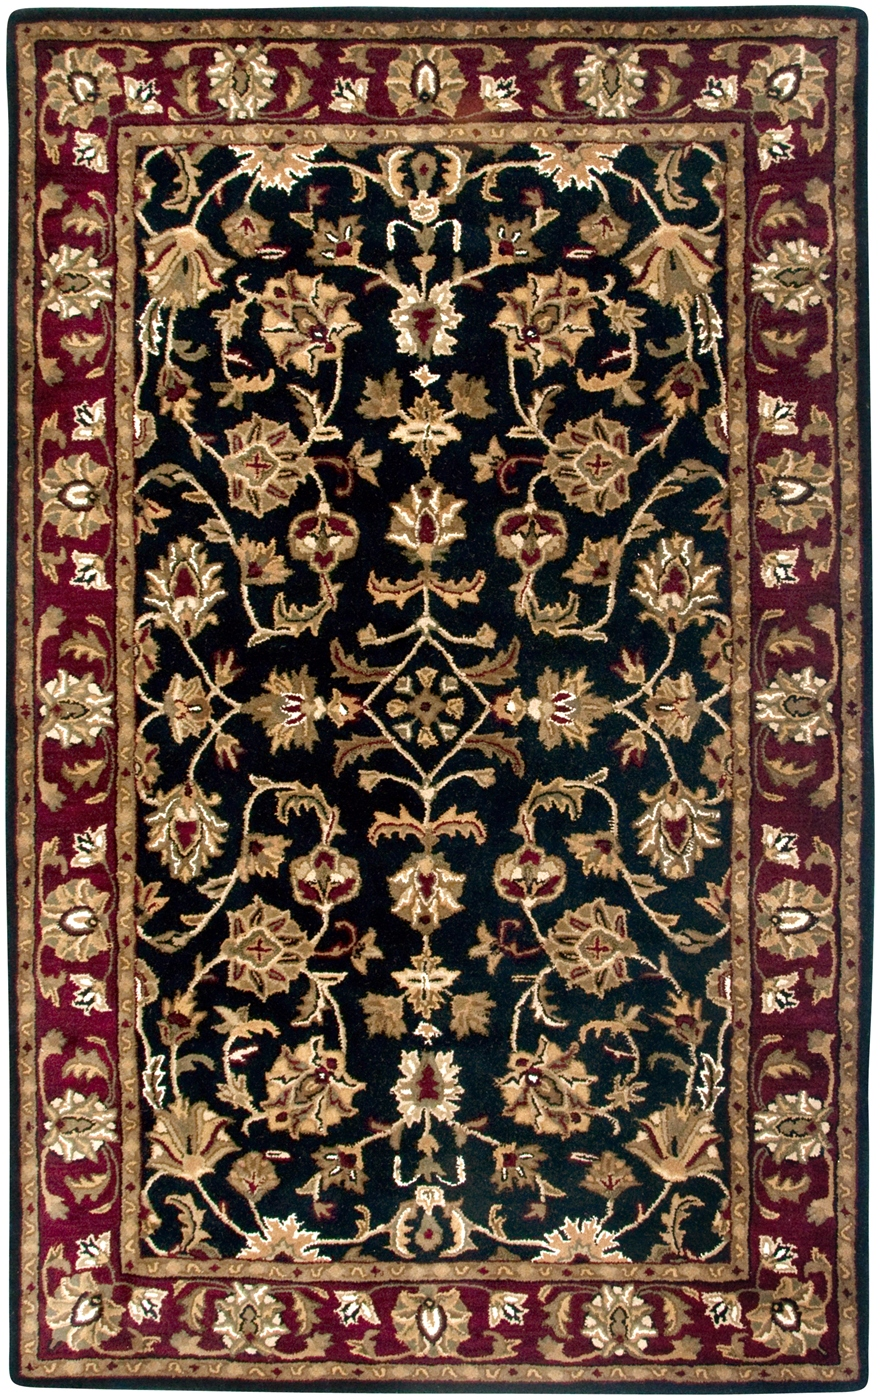 Volare Ornate Vine Pattern Wool Area Rug In Black Burgundy